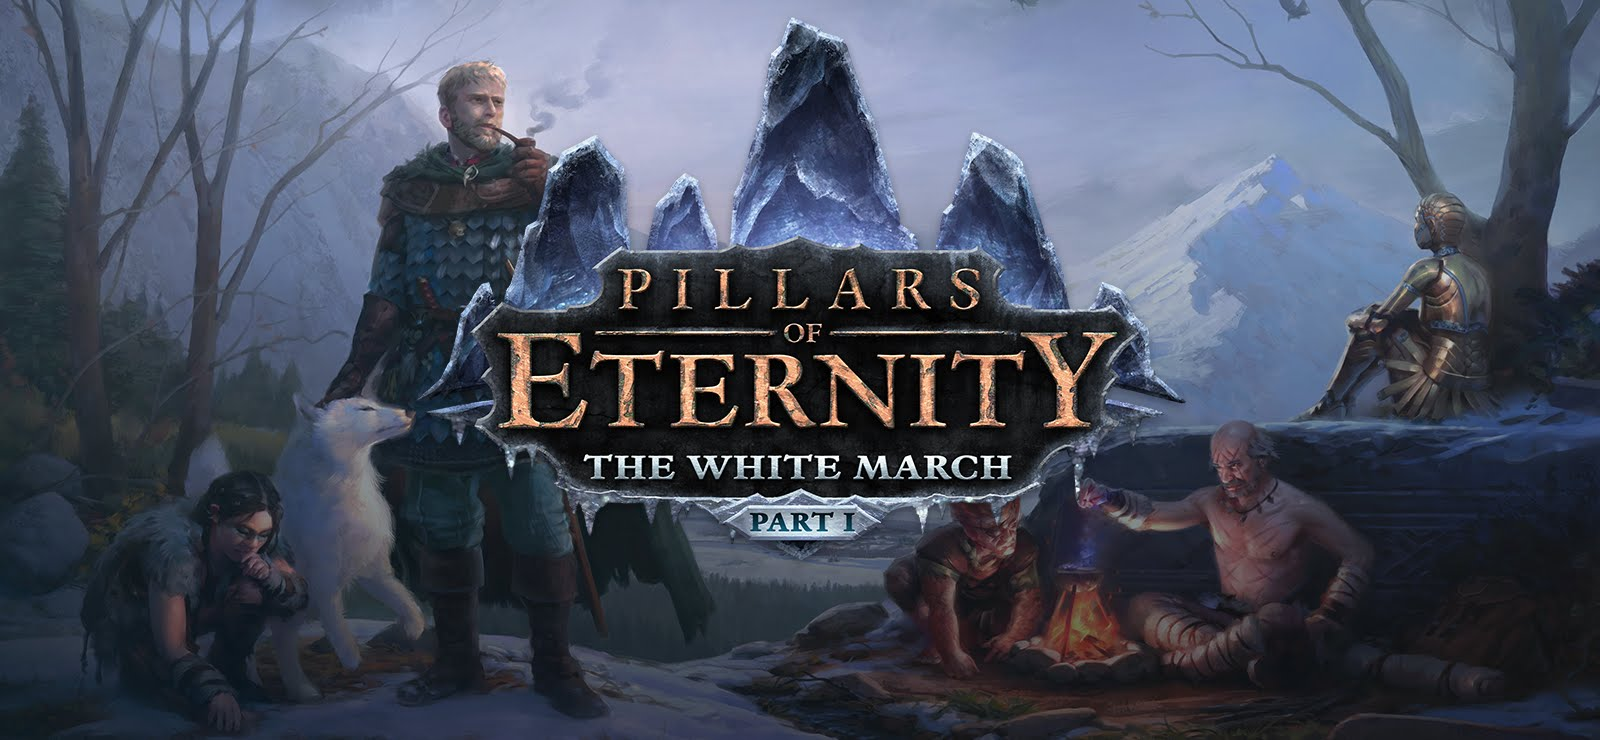 دانلود بازی Pillars of Eternity The White March Part II